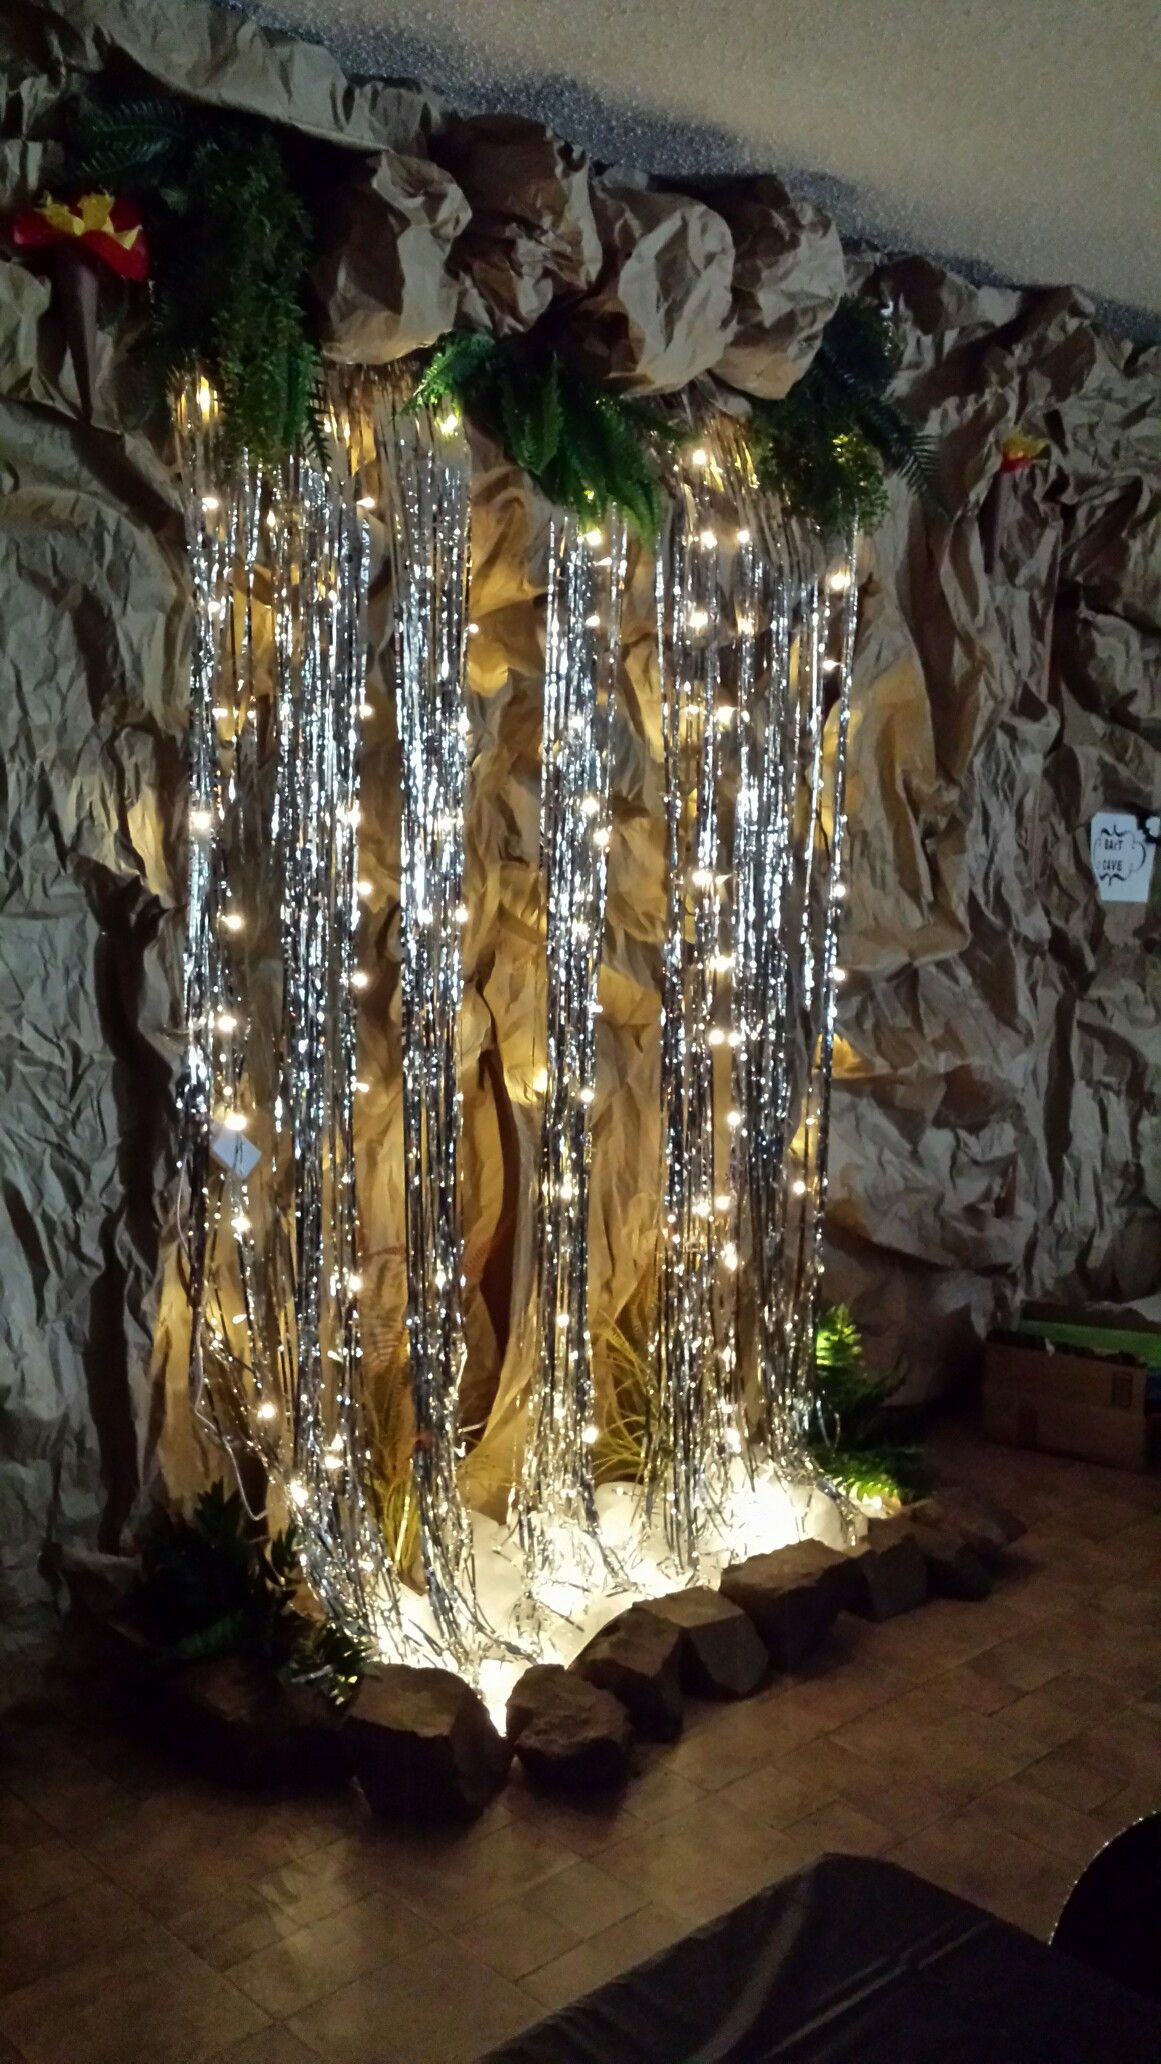 Waterfall with curtain lights